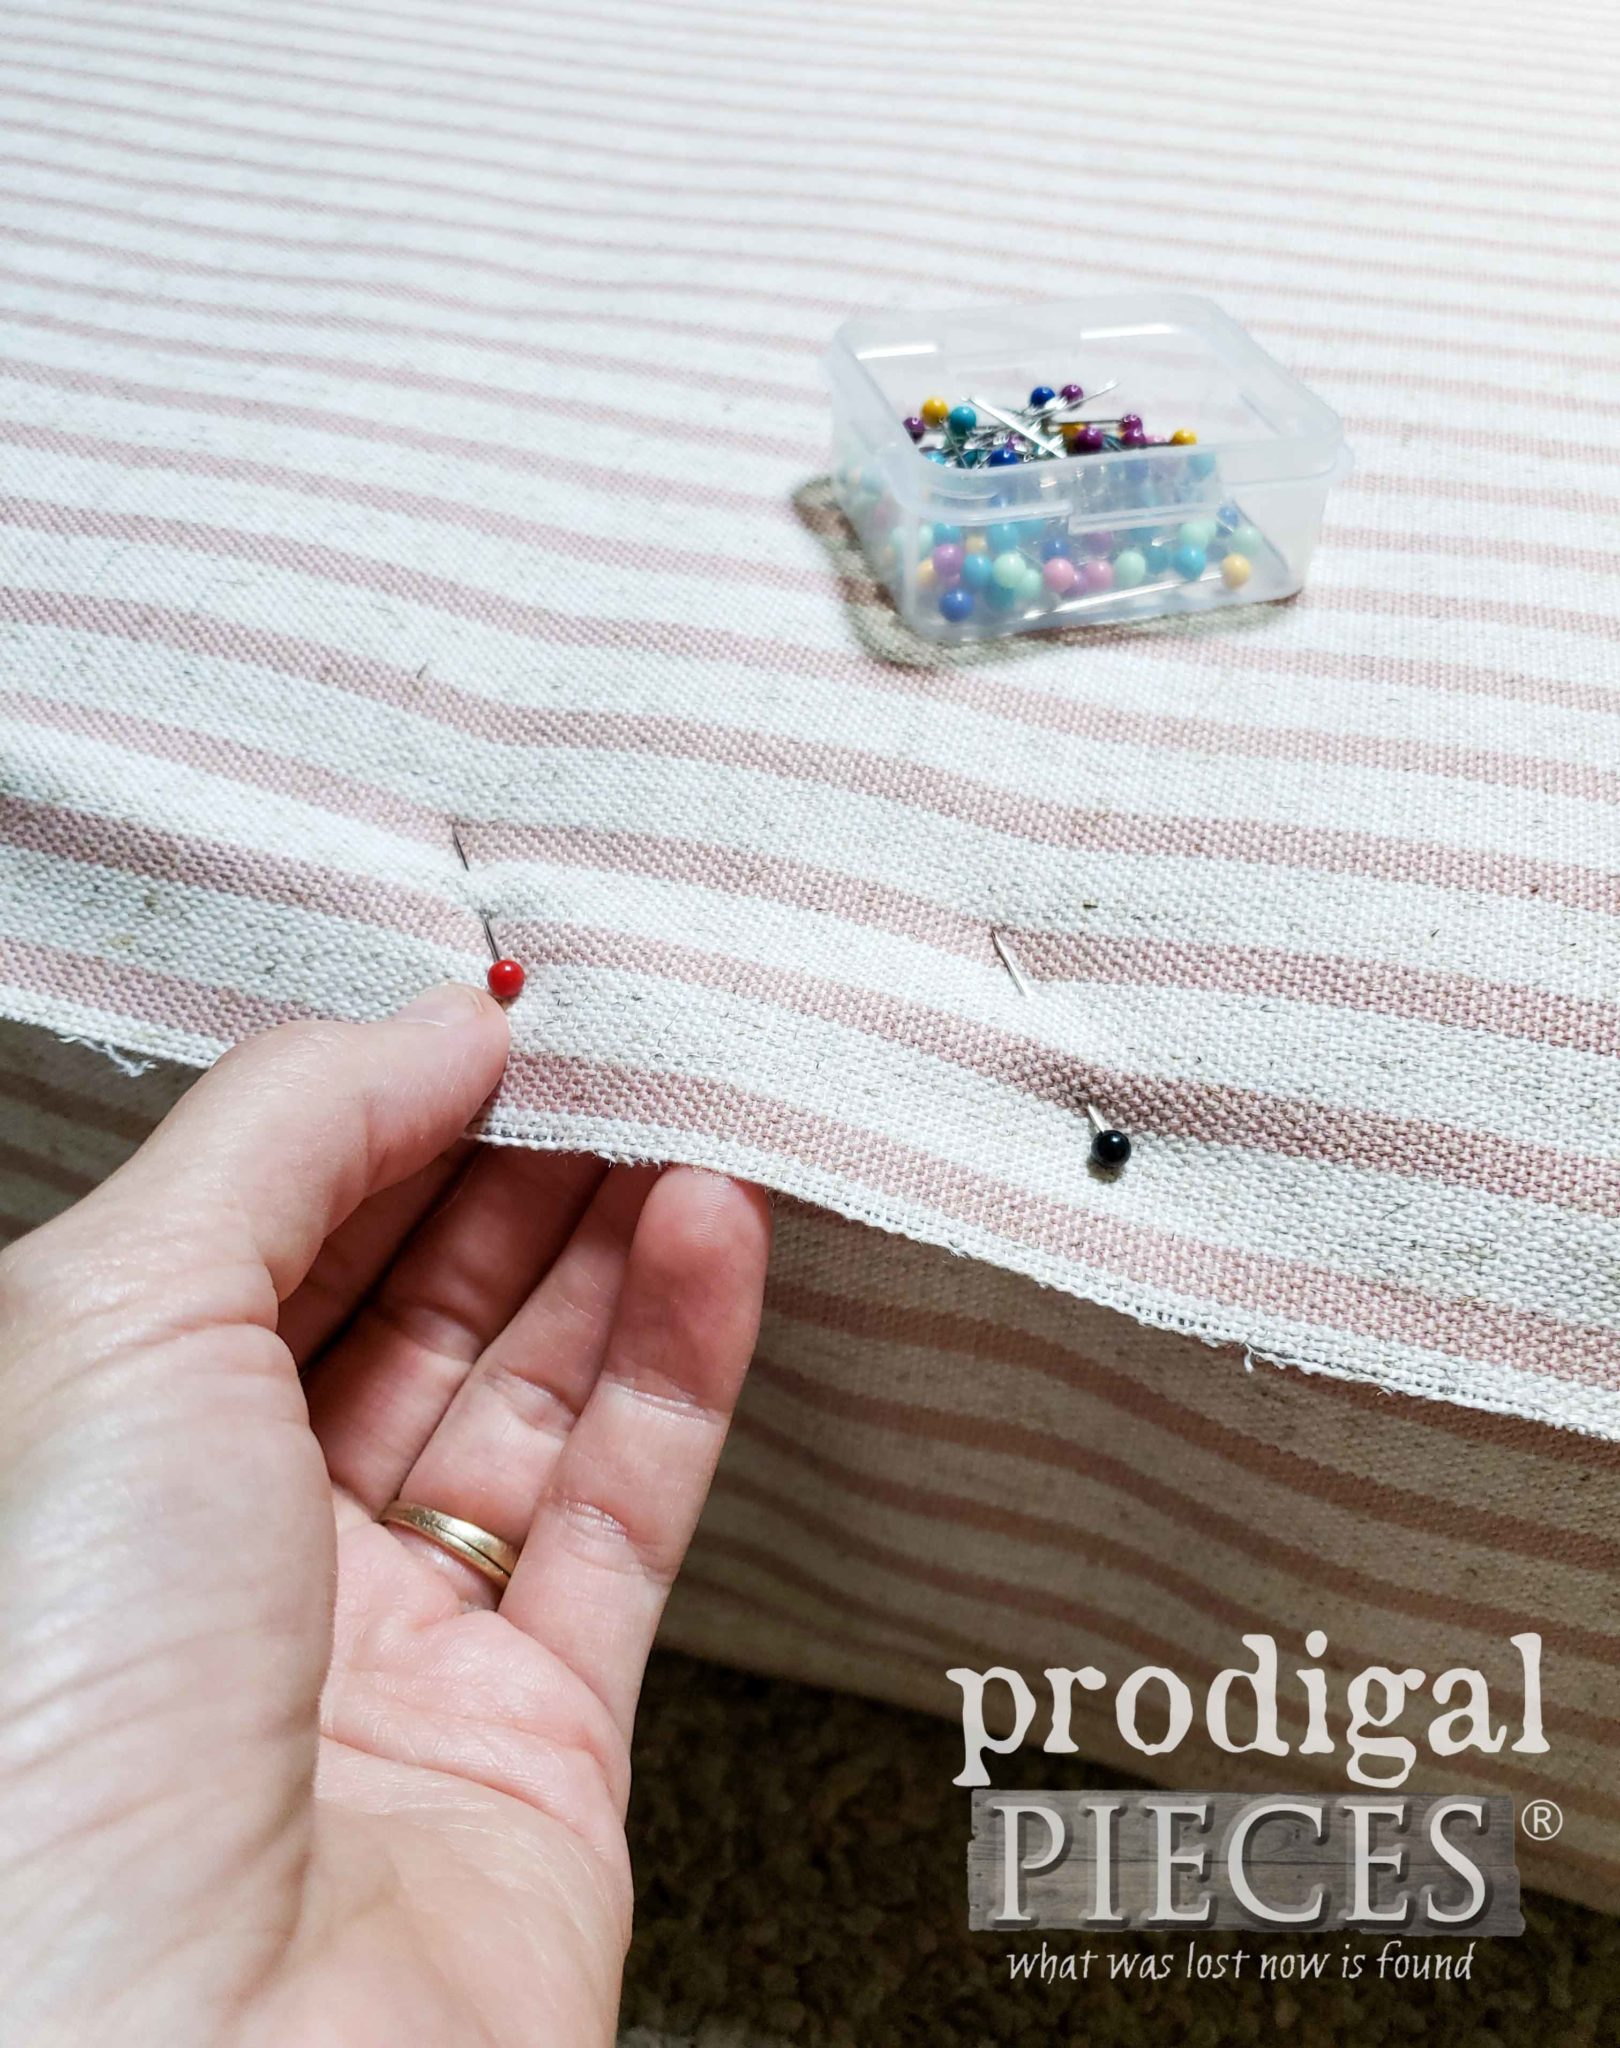 Pinning Upholstery for Fitting | prodigalpieces.com